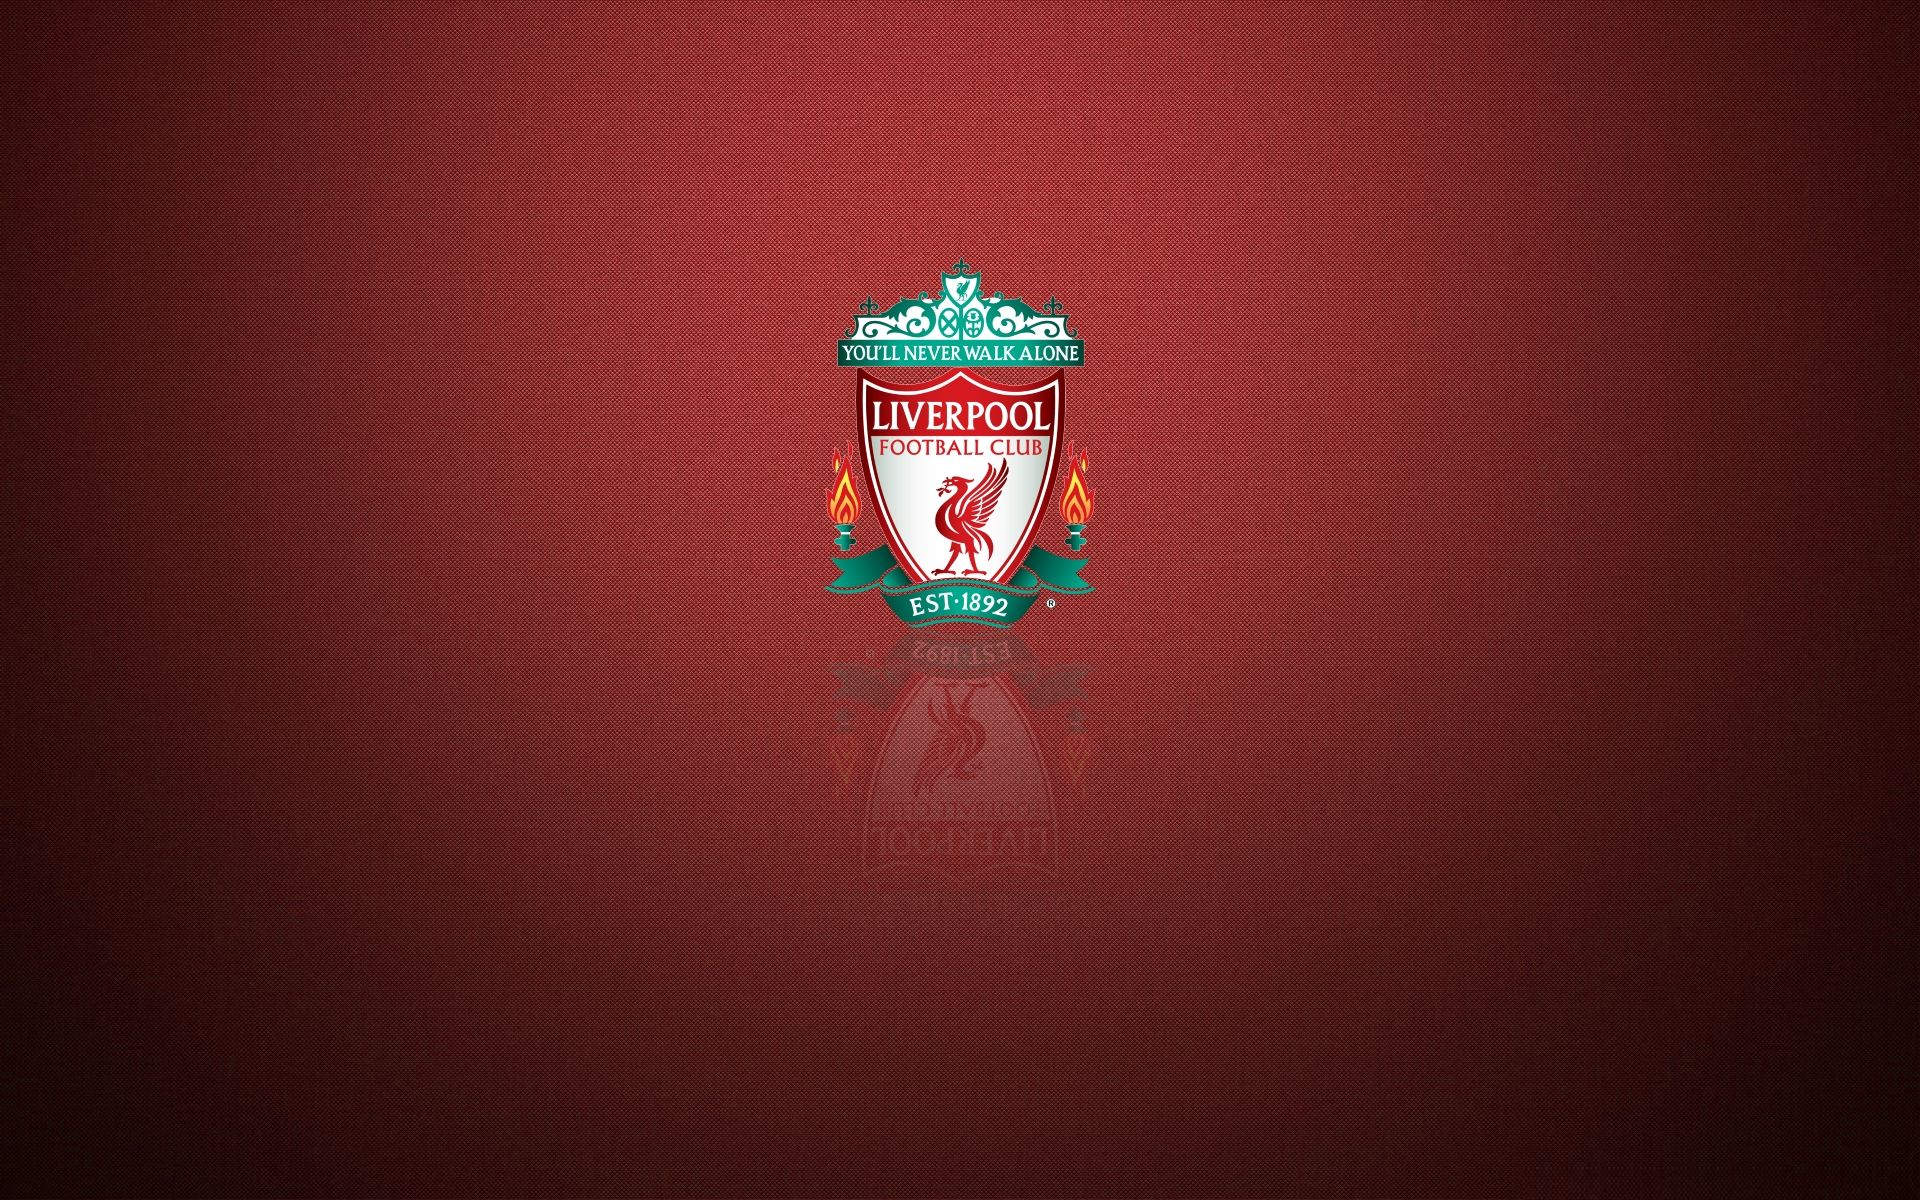 pin wallpaper liverpool awesome - photo #15